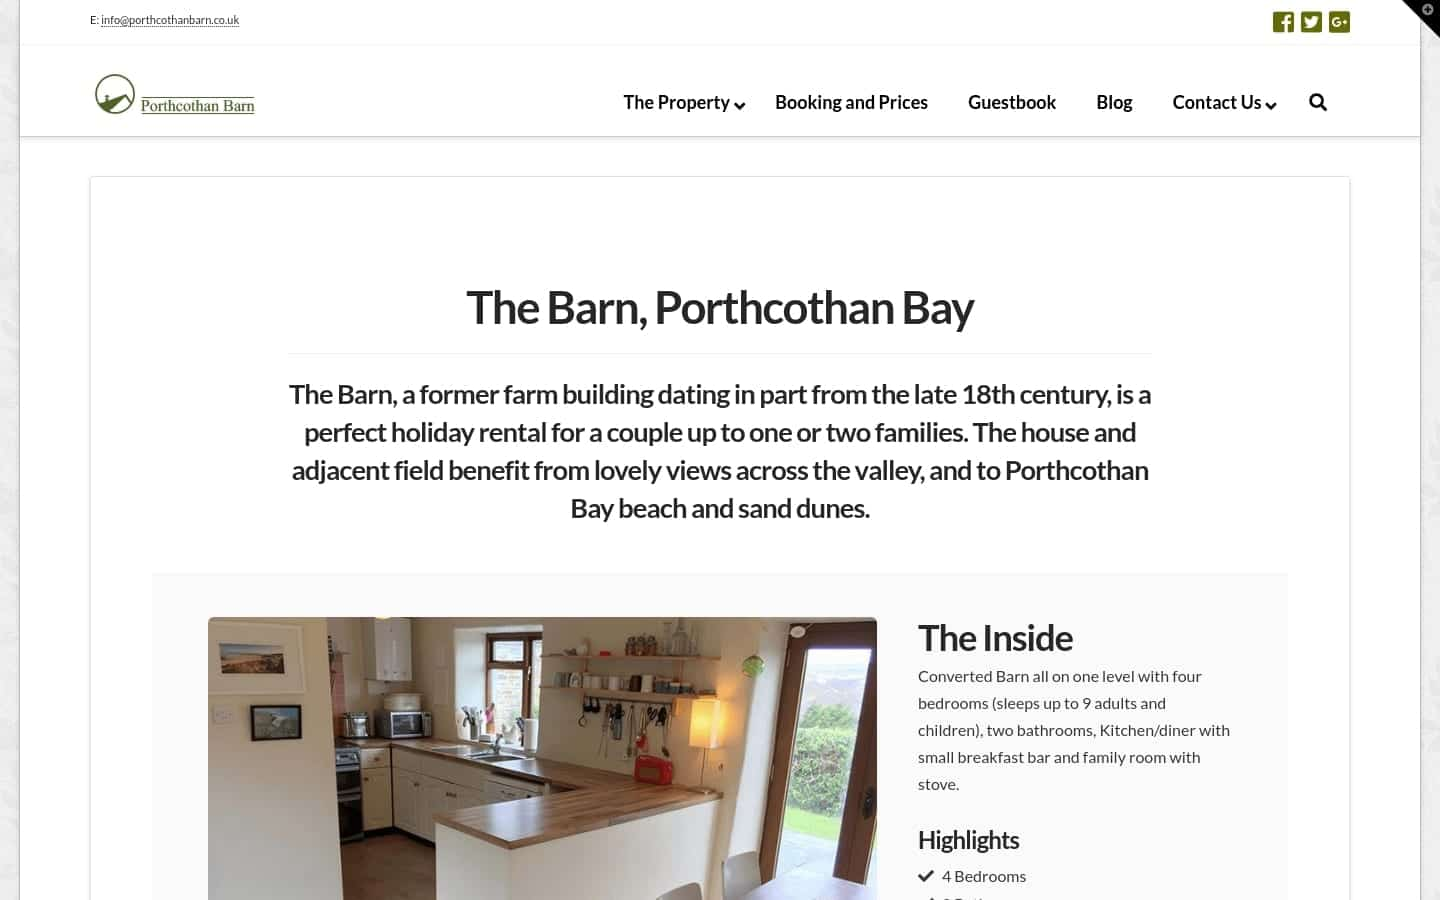 Porthcothan Barn Desktop Website